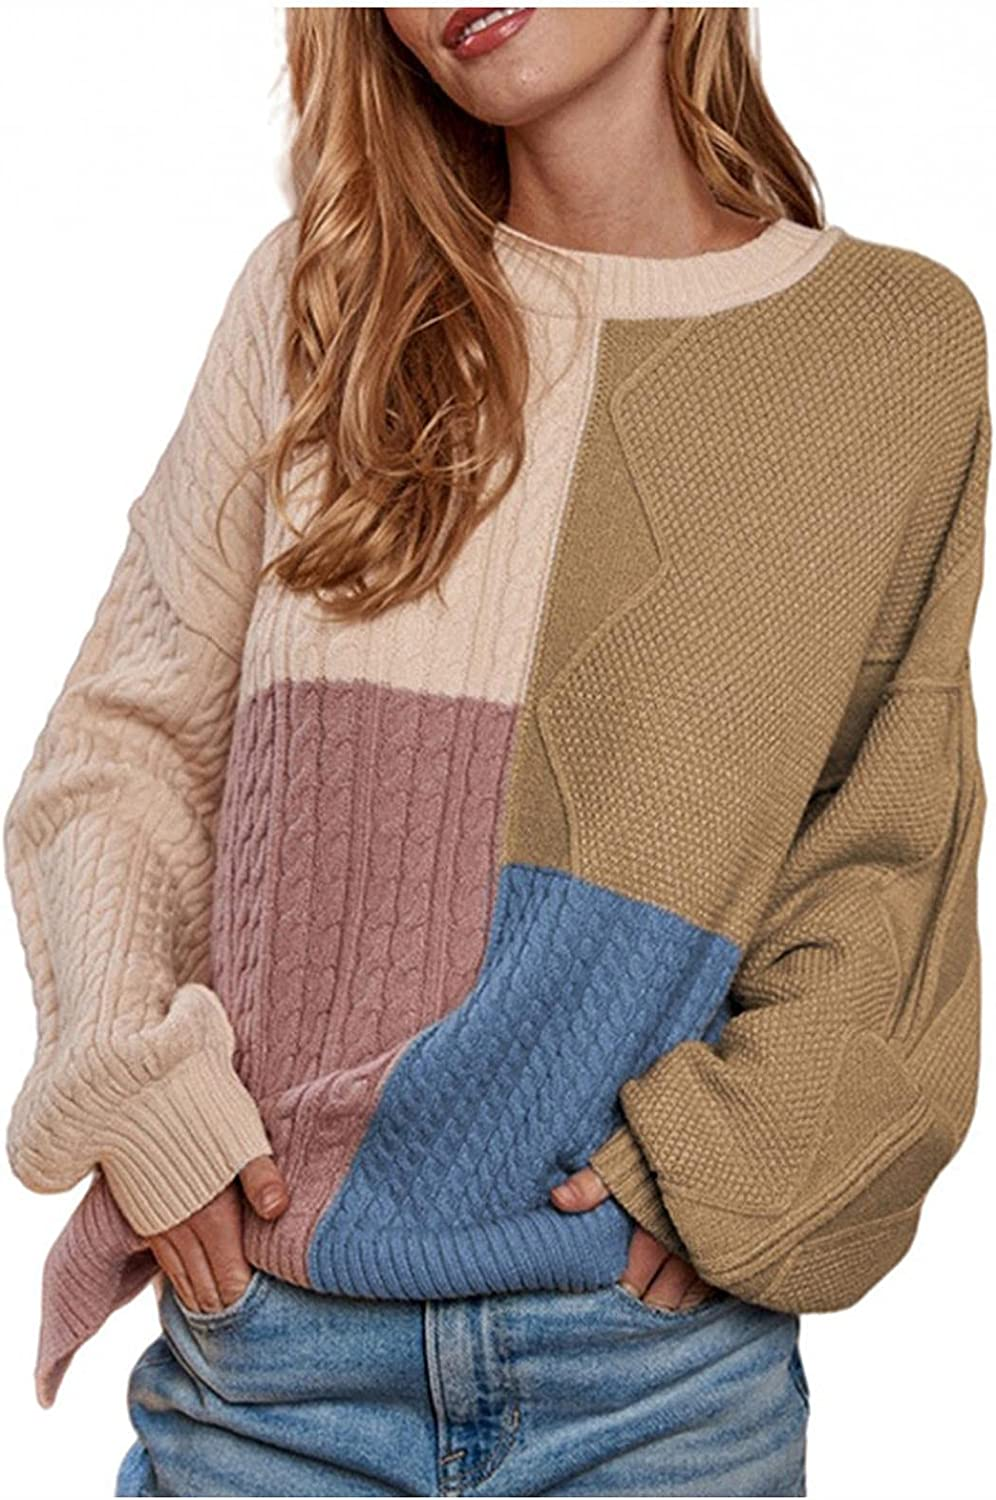 Oversized Sweaters for Women Color Block Patchwork Knitwear Lantern Sleeve O Neck Blouse Warm Casual Pullover